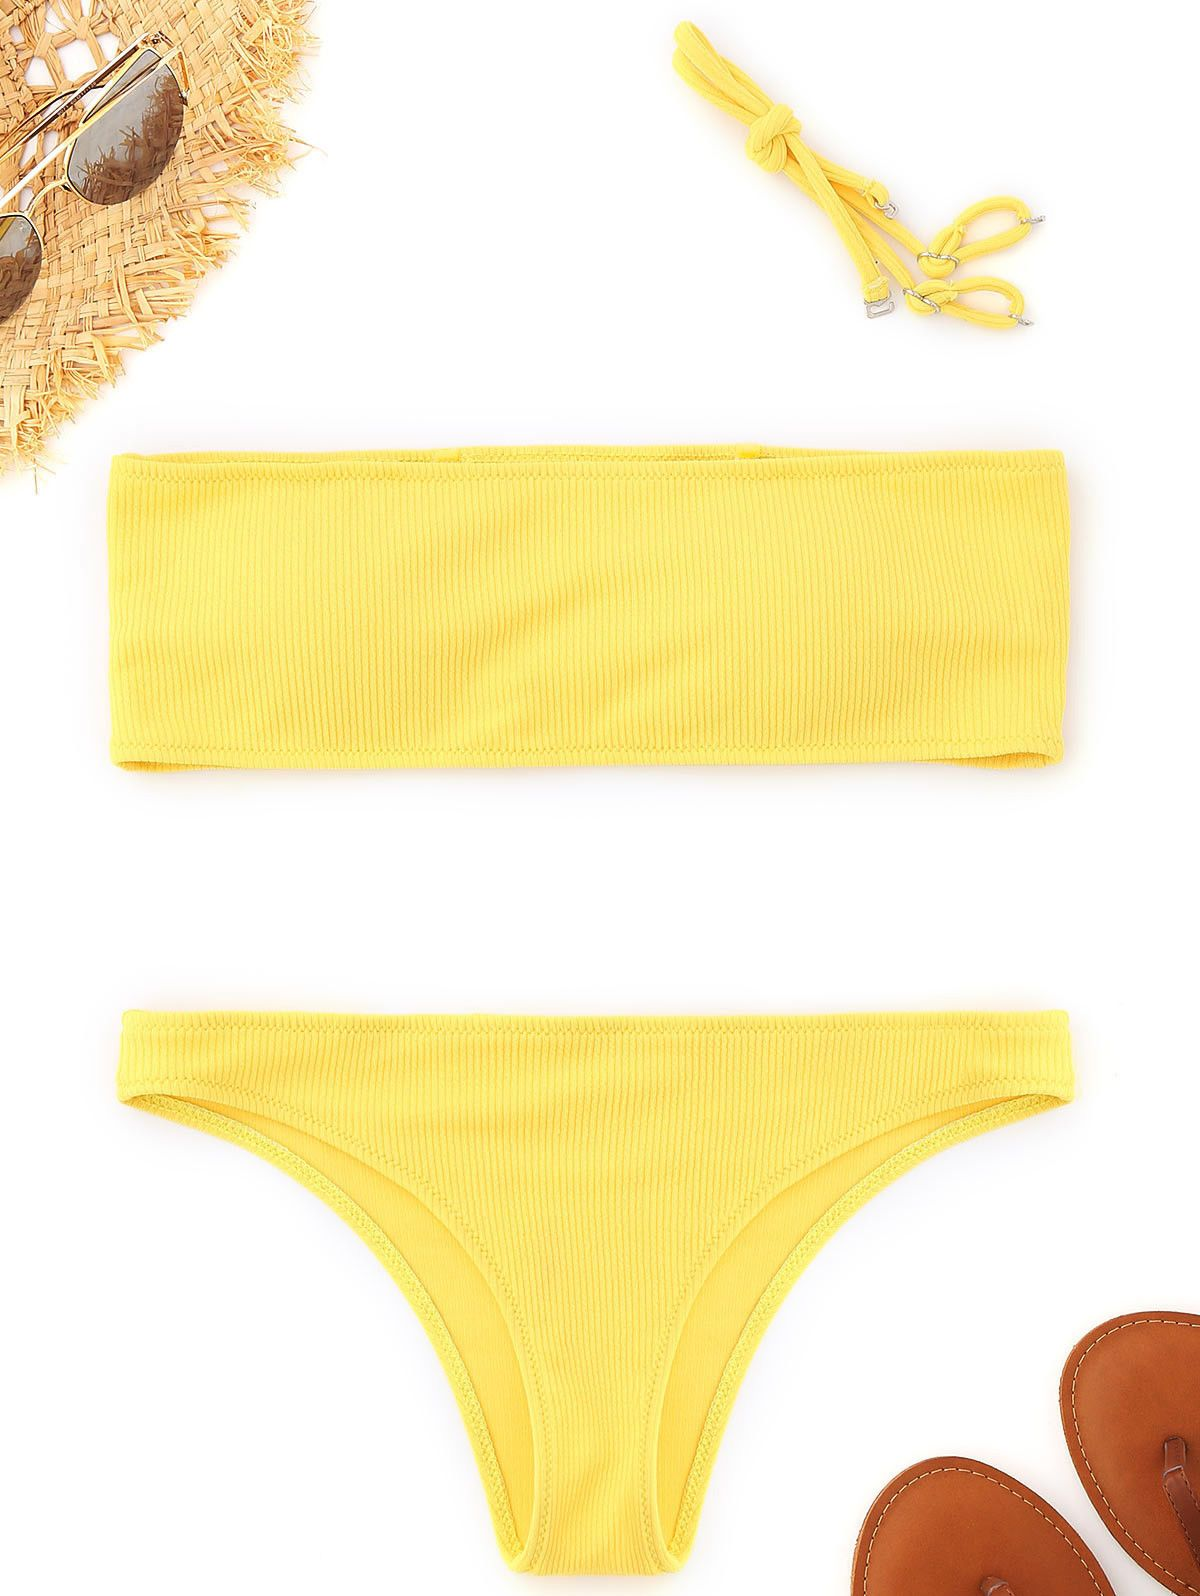 8c9fbc2cf9  8.99 - Women Swimsuit Swimwear Push Up Halter Bandeau Ribbed Bikini Set   ebay  Fashion